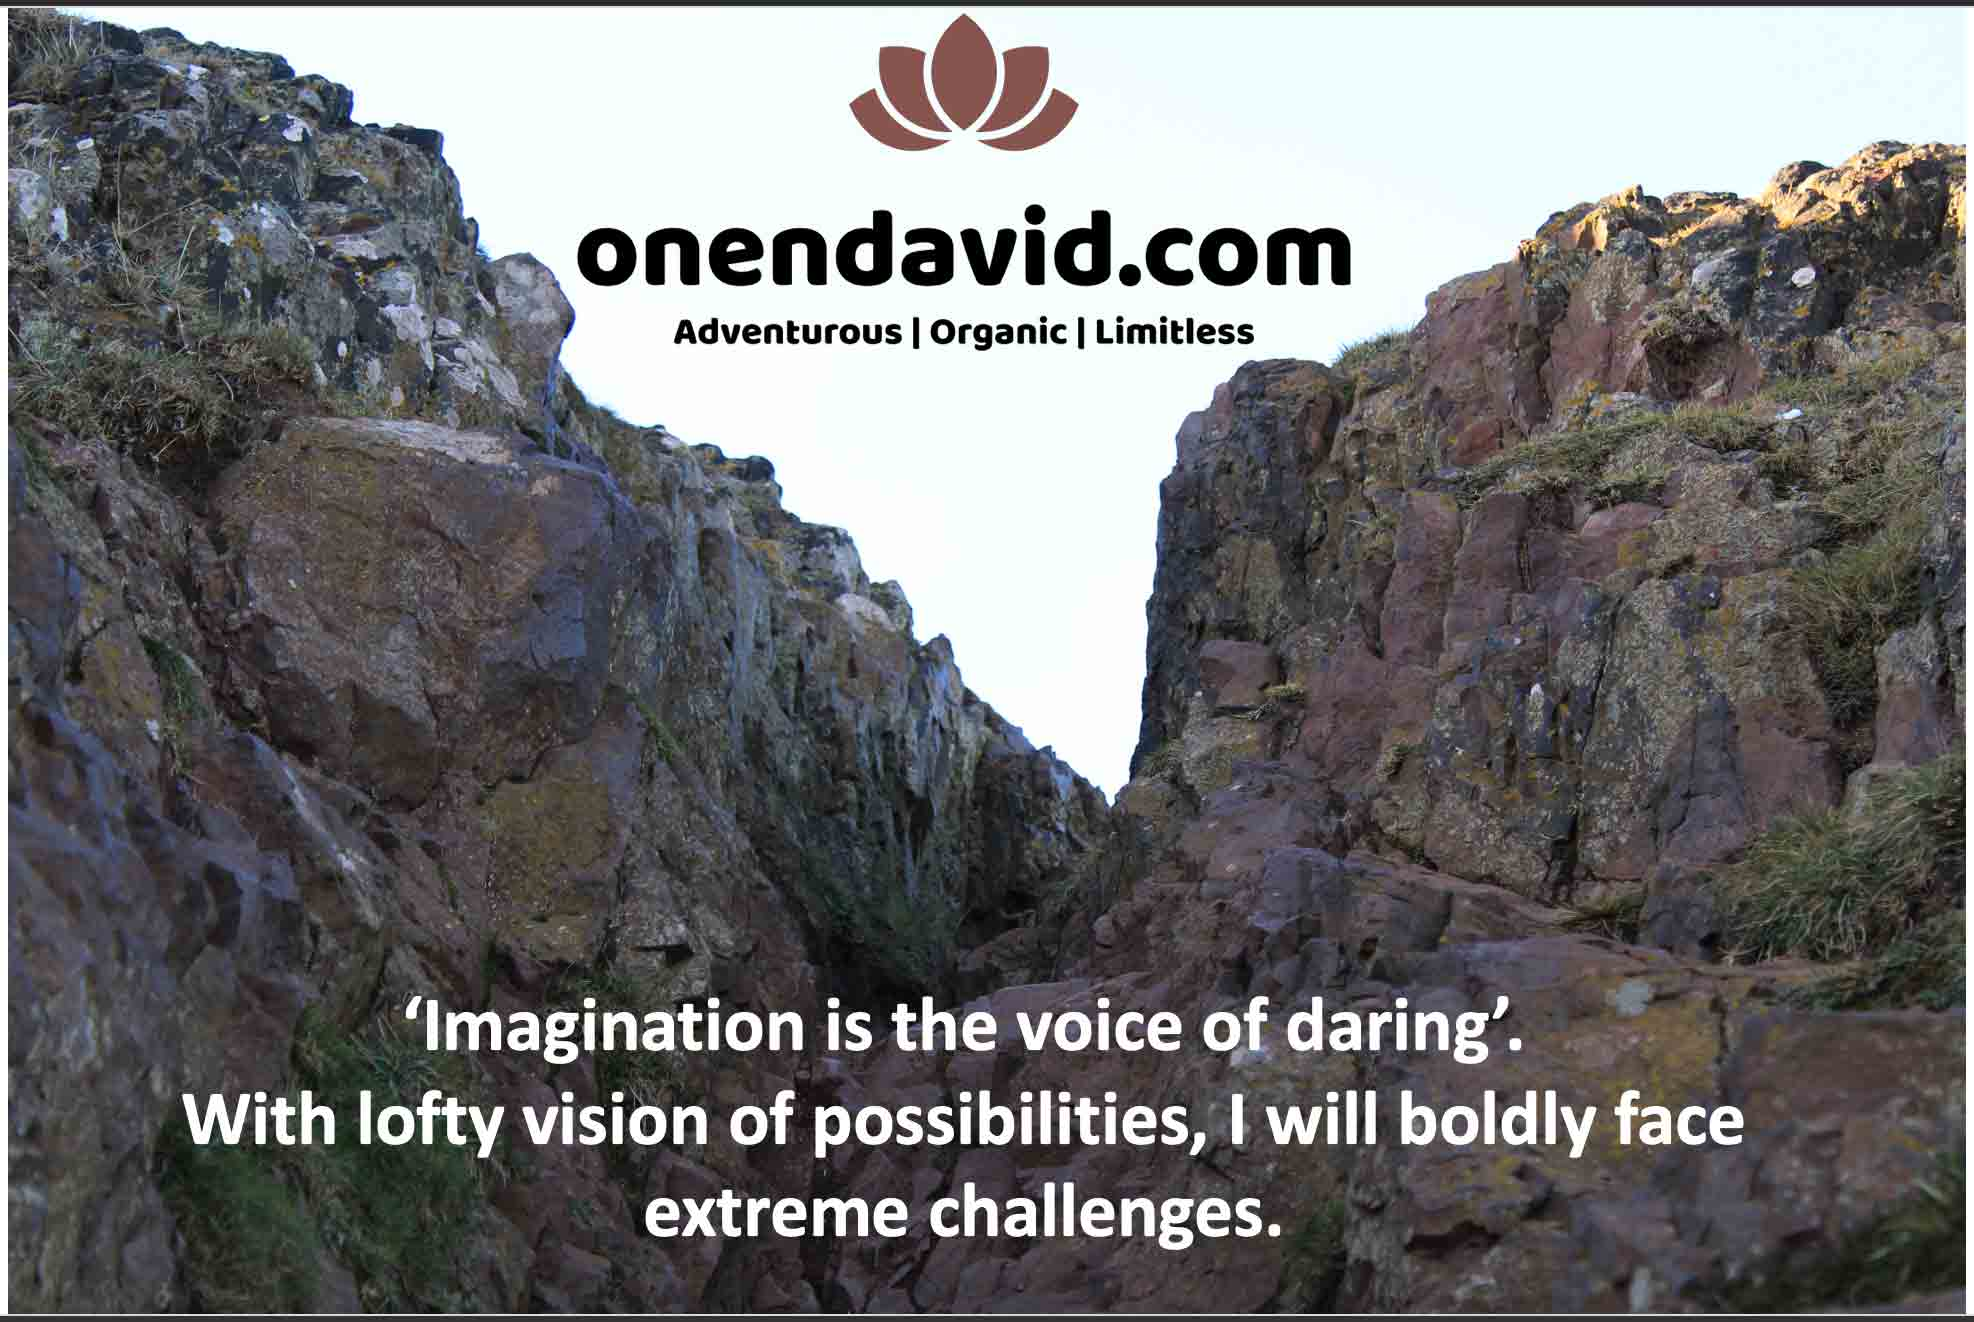 'Imagination is the voice of daring': Daring extreme challenges in 2020 and the years to come